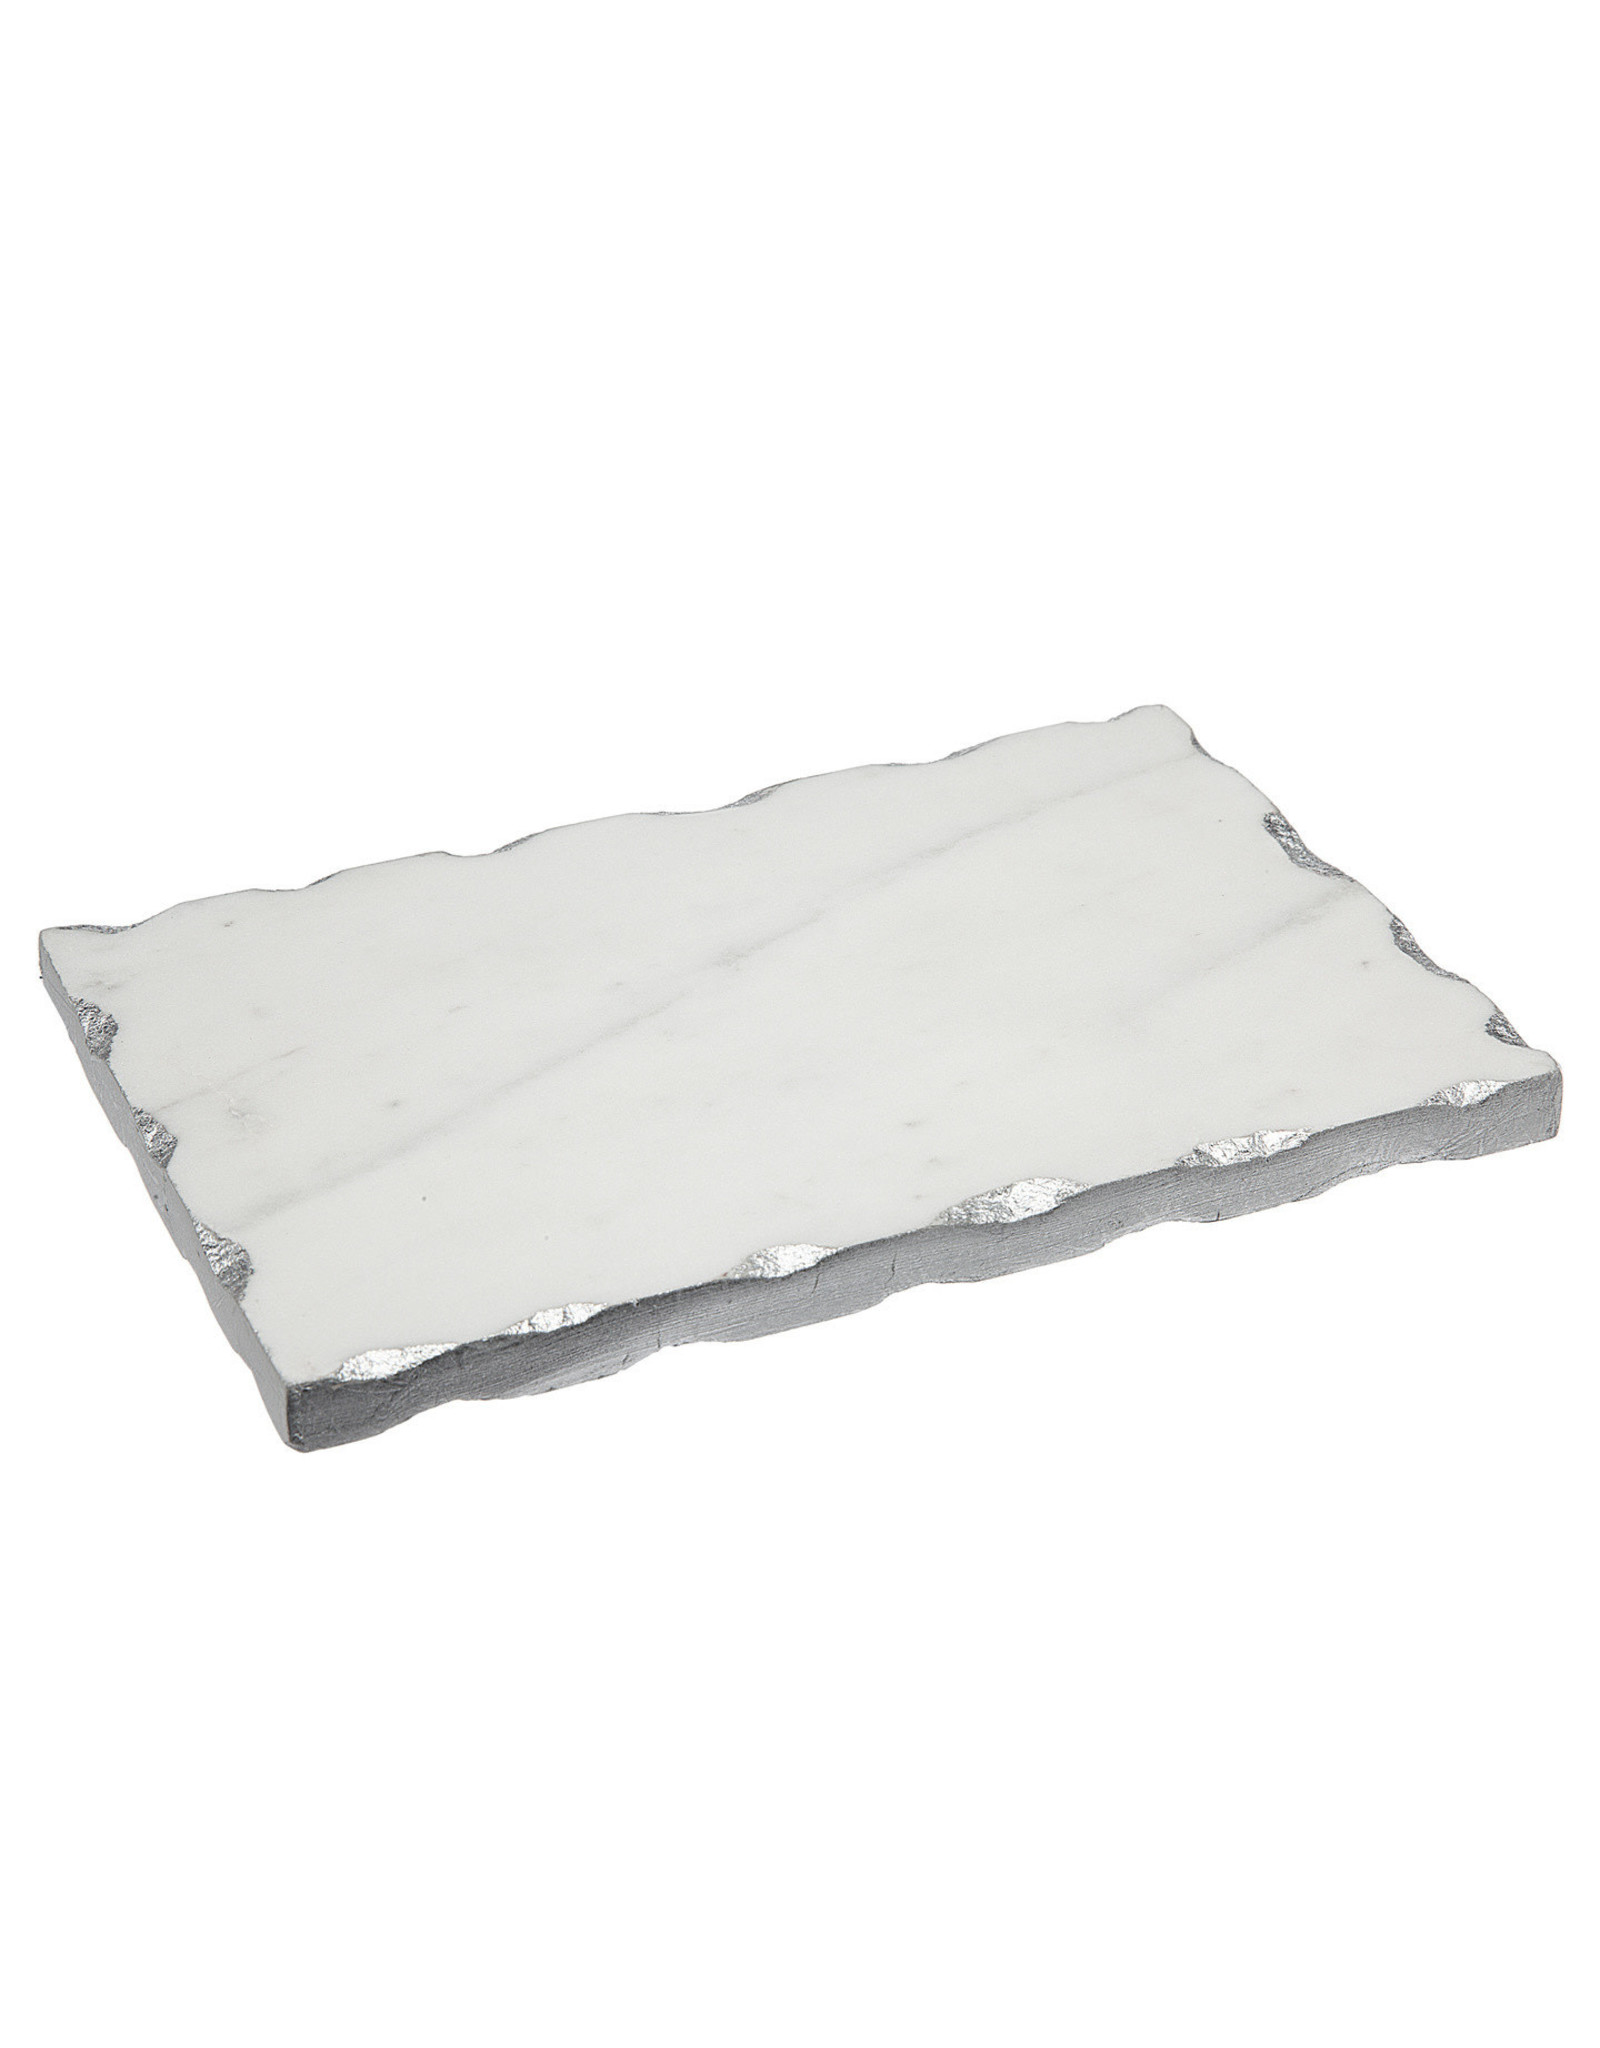 61685 Marble Silver Shot Glass Tray 9X6